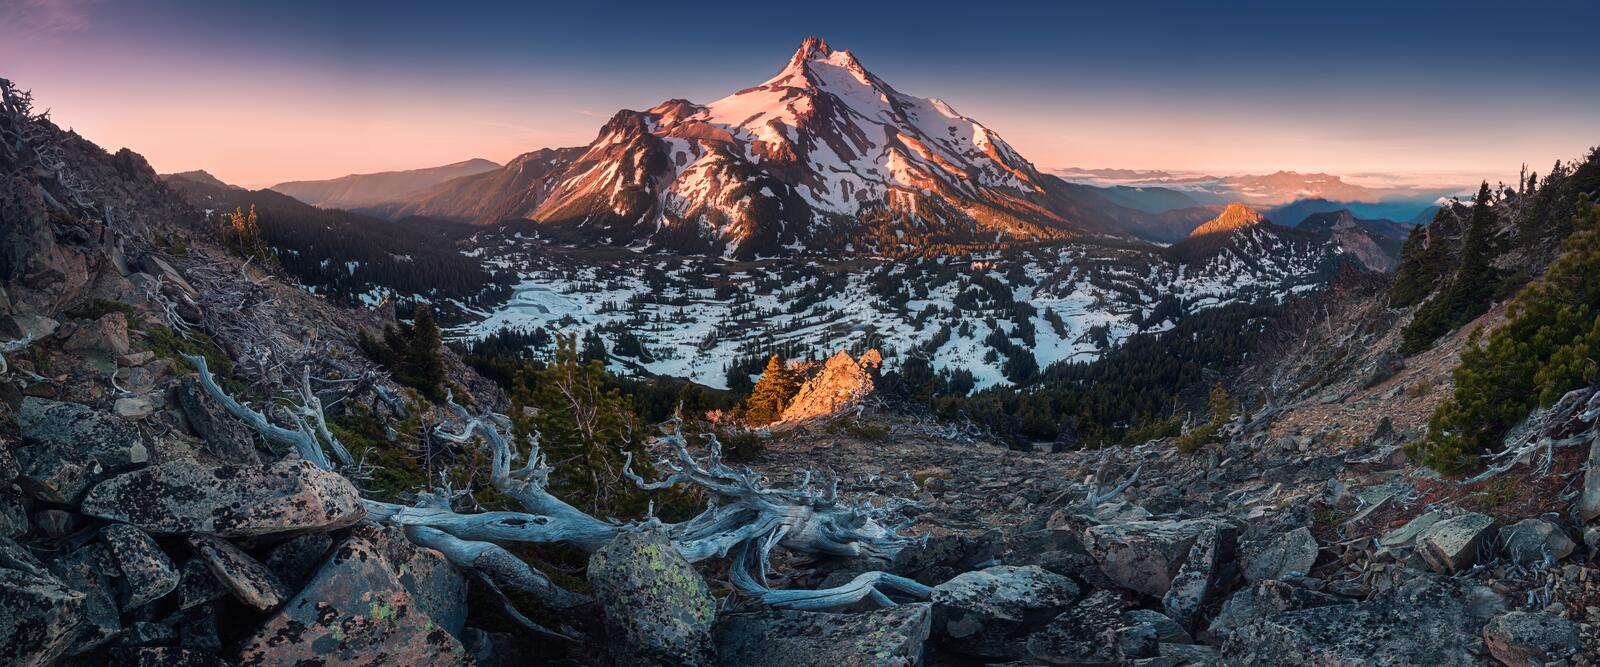 At 10,492 feet high, Mt Jefferson is Oregon`s second tallest mountain.Mount Jefferson Wilderness Area, Oregon The snow covered. Central Oregon Cascade volcano stock image